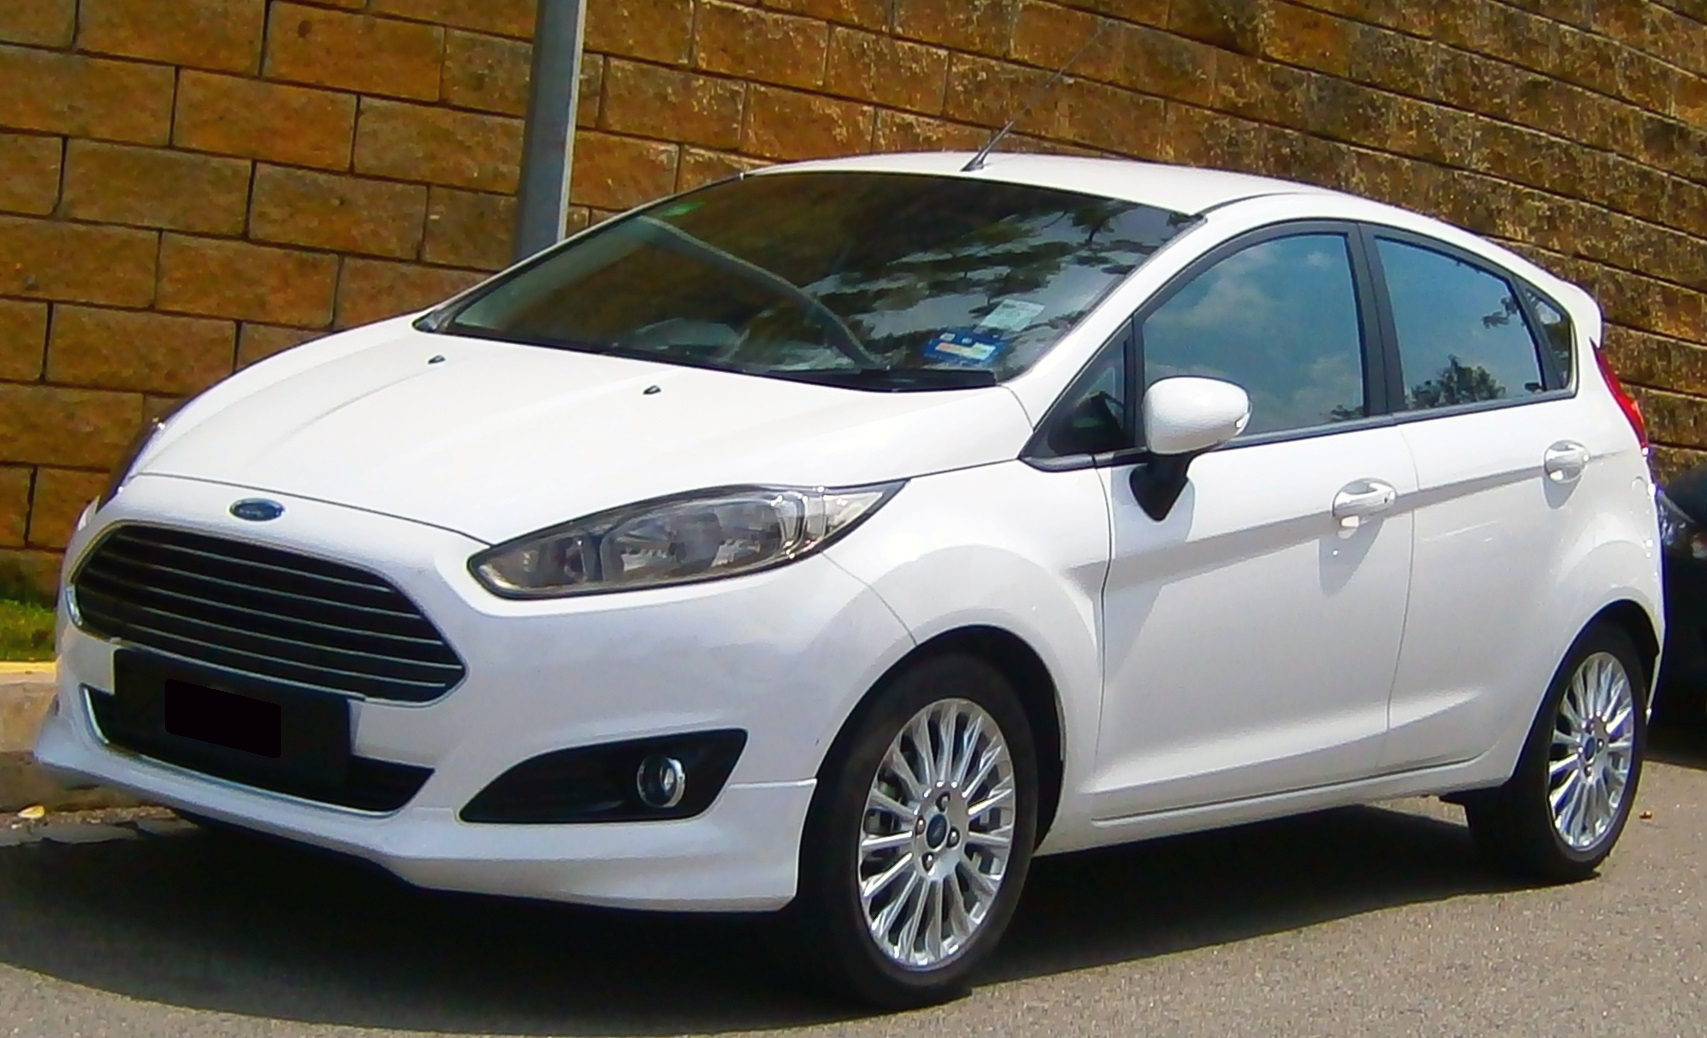 Ford Fiesta 1.5 2013 photo - 1